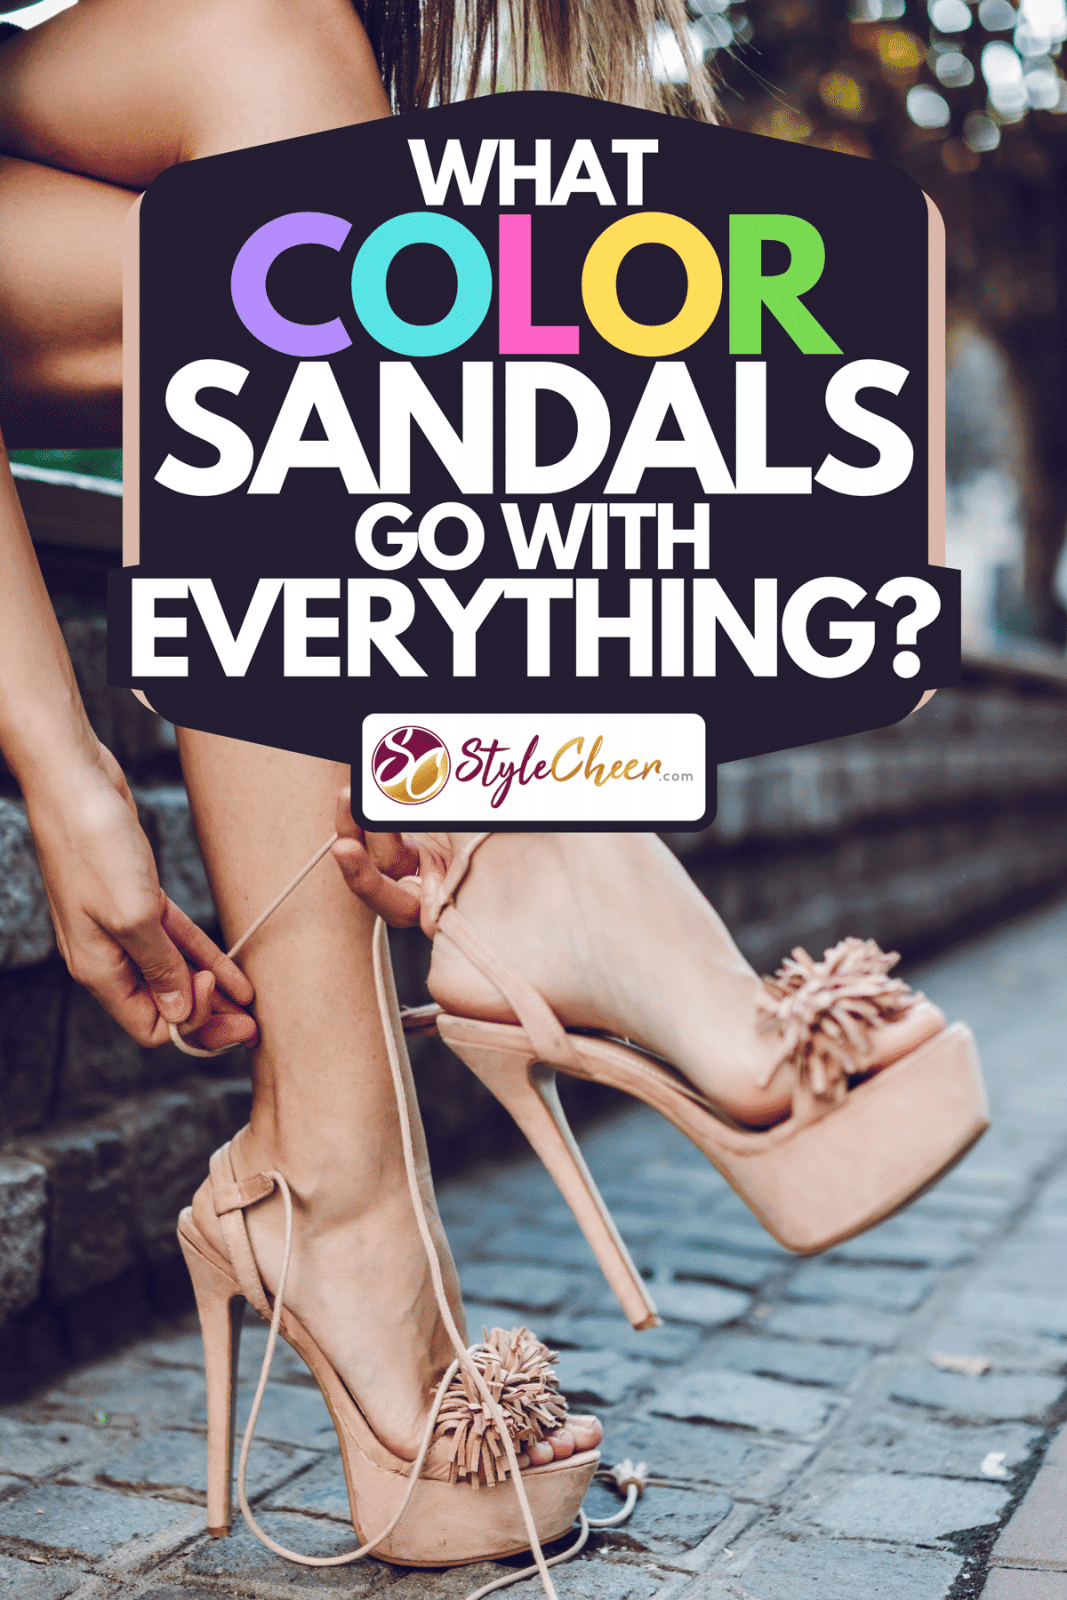 A young beautiful woman is wearing high heel sandals, What Color Sandals Go With Everything?